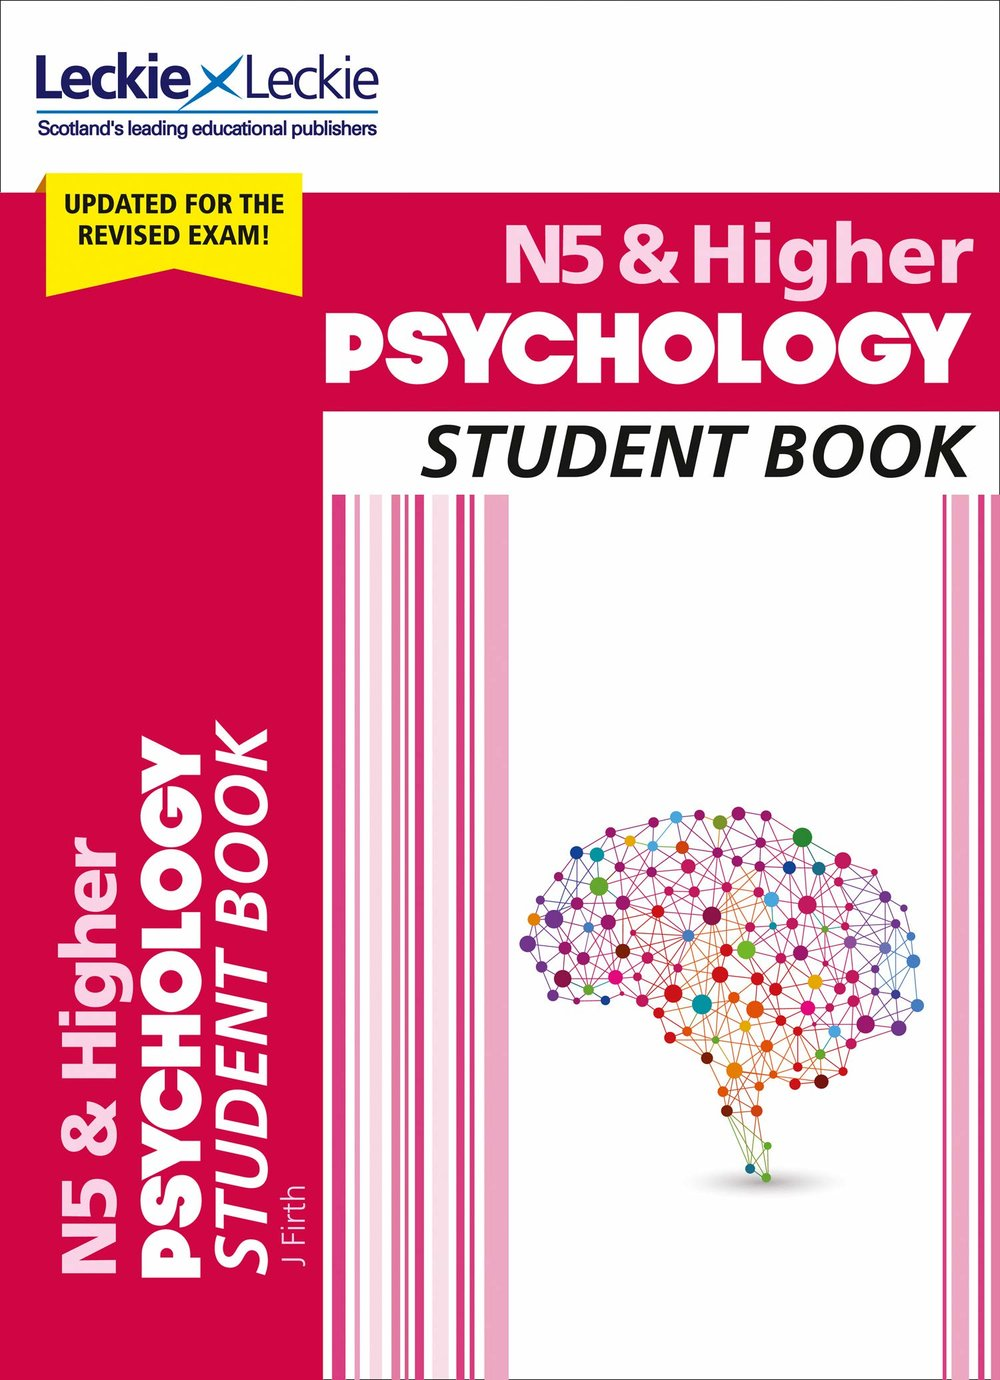 N5 & Higher Psychology Student Book - This textbook is aimed at all students studying either N5 or Higher Psychology, and is also suitable for those who do both courses consecutively.It all option topics for Higher and the most popular choices for N5, and is packed with review questions and activities. The clear structure helps learners to see how topics are organised, and a detailed introduction chapter shows the links to different perspectives/approaches to Psychology.There is also a chapter on study skills, and a chapter on the Assignment with examples for both Higher and N5.The second edition of the book came out in February 2019, so make sure you have the most up to date version!